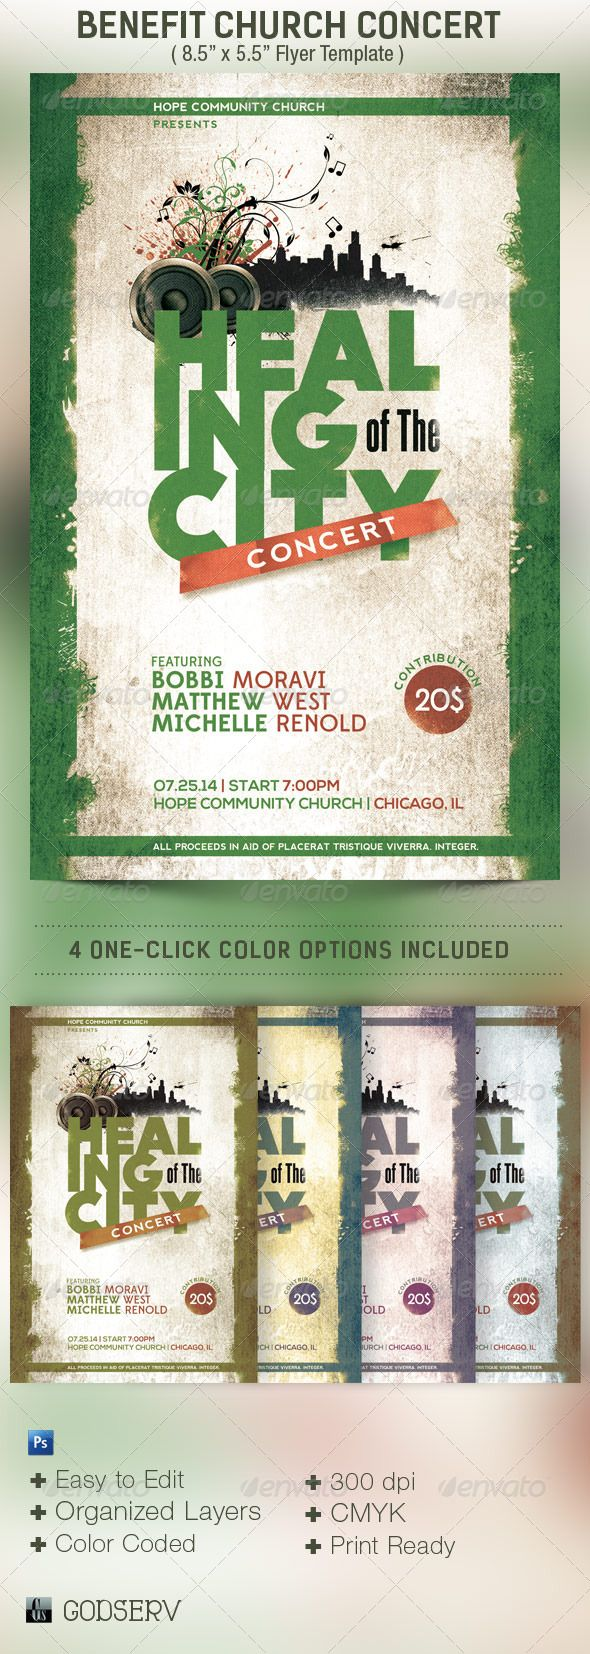 Benefit Concert Church Flyer Template  Flyer Template Benefit